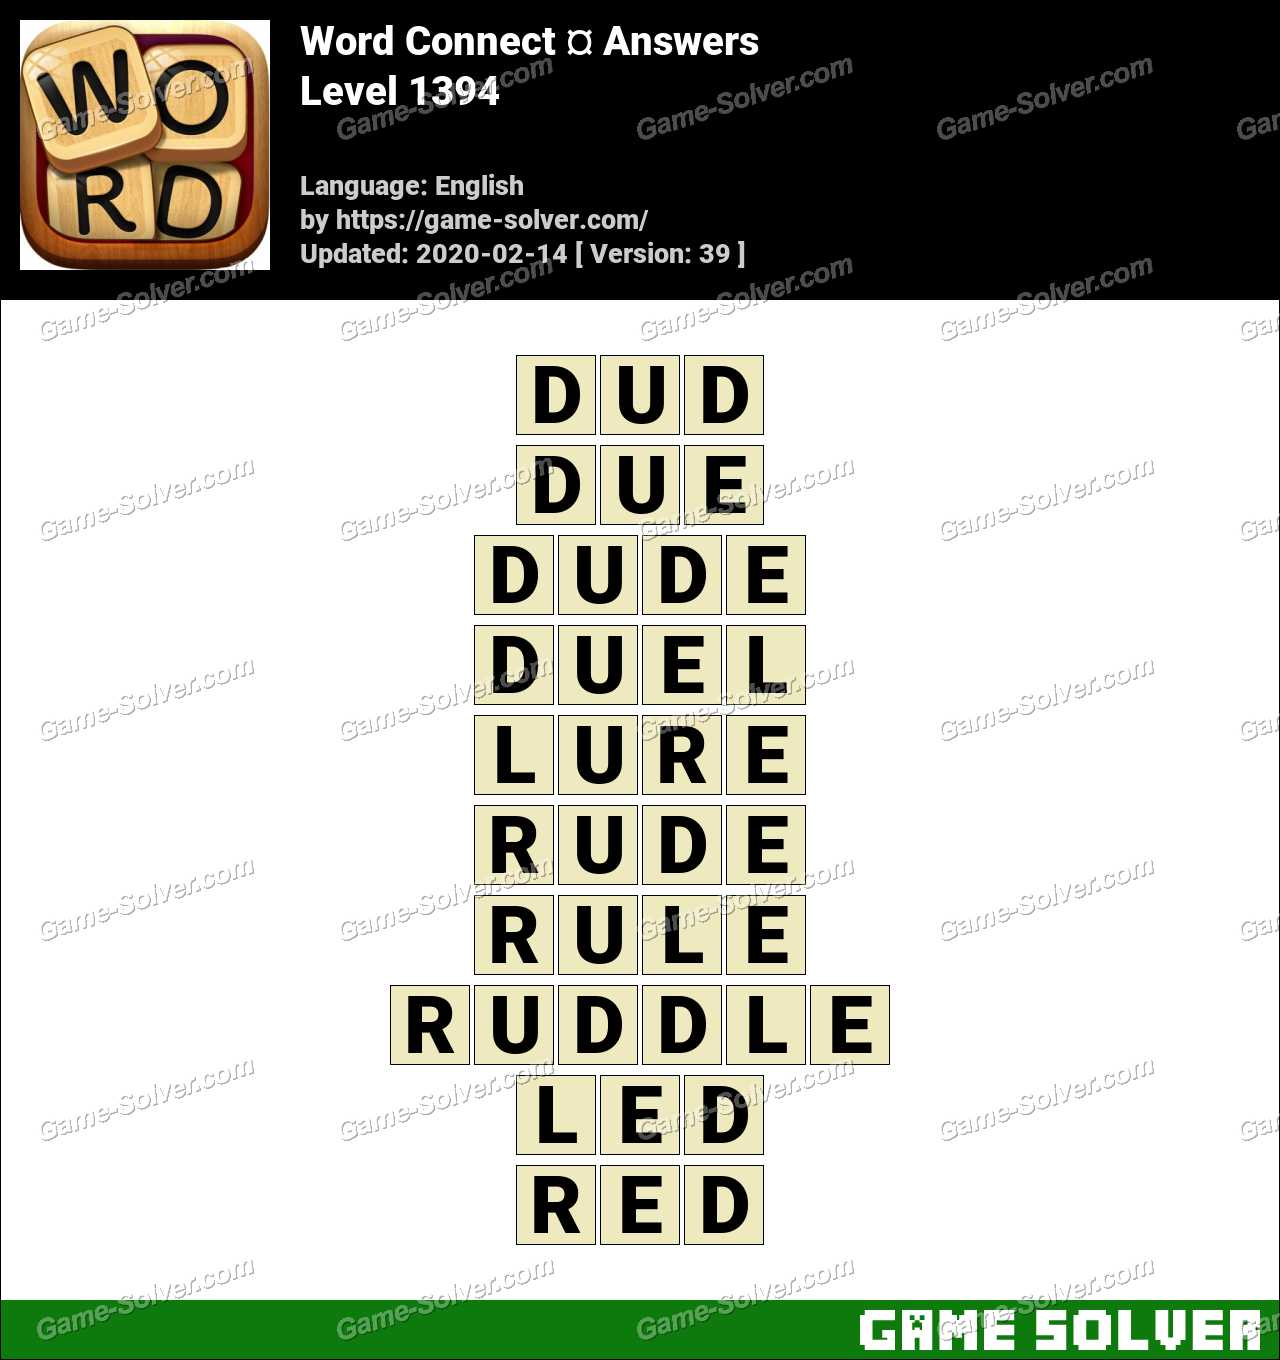 Word Connect Level 1394 Answers